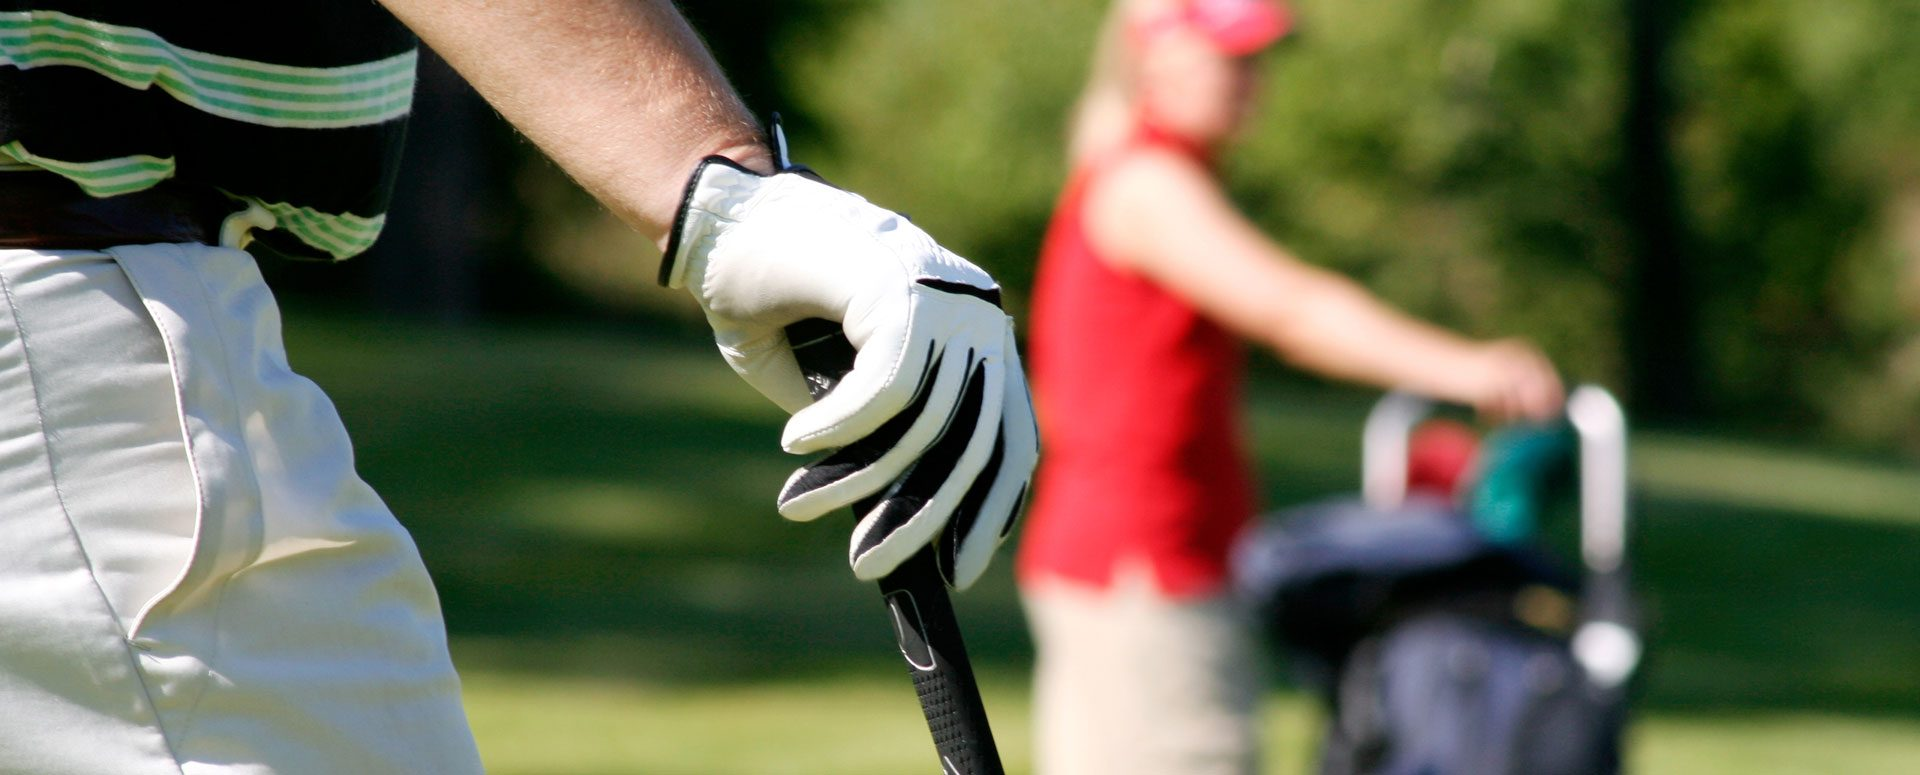 Attract and retain today's golfer